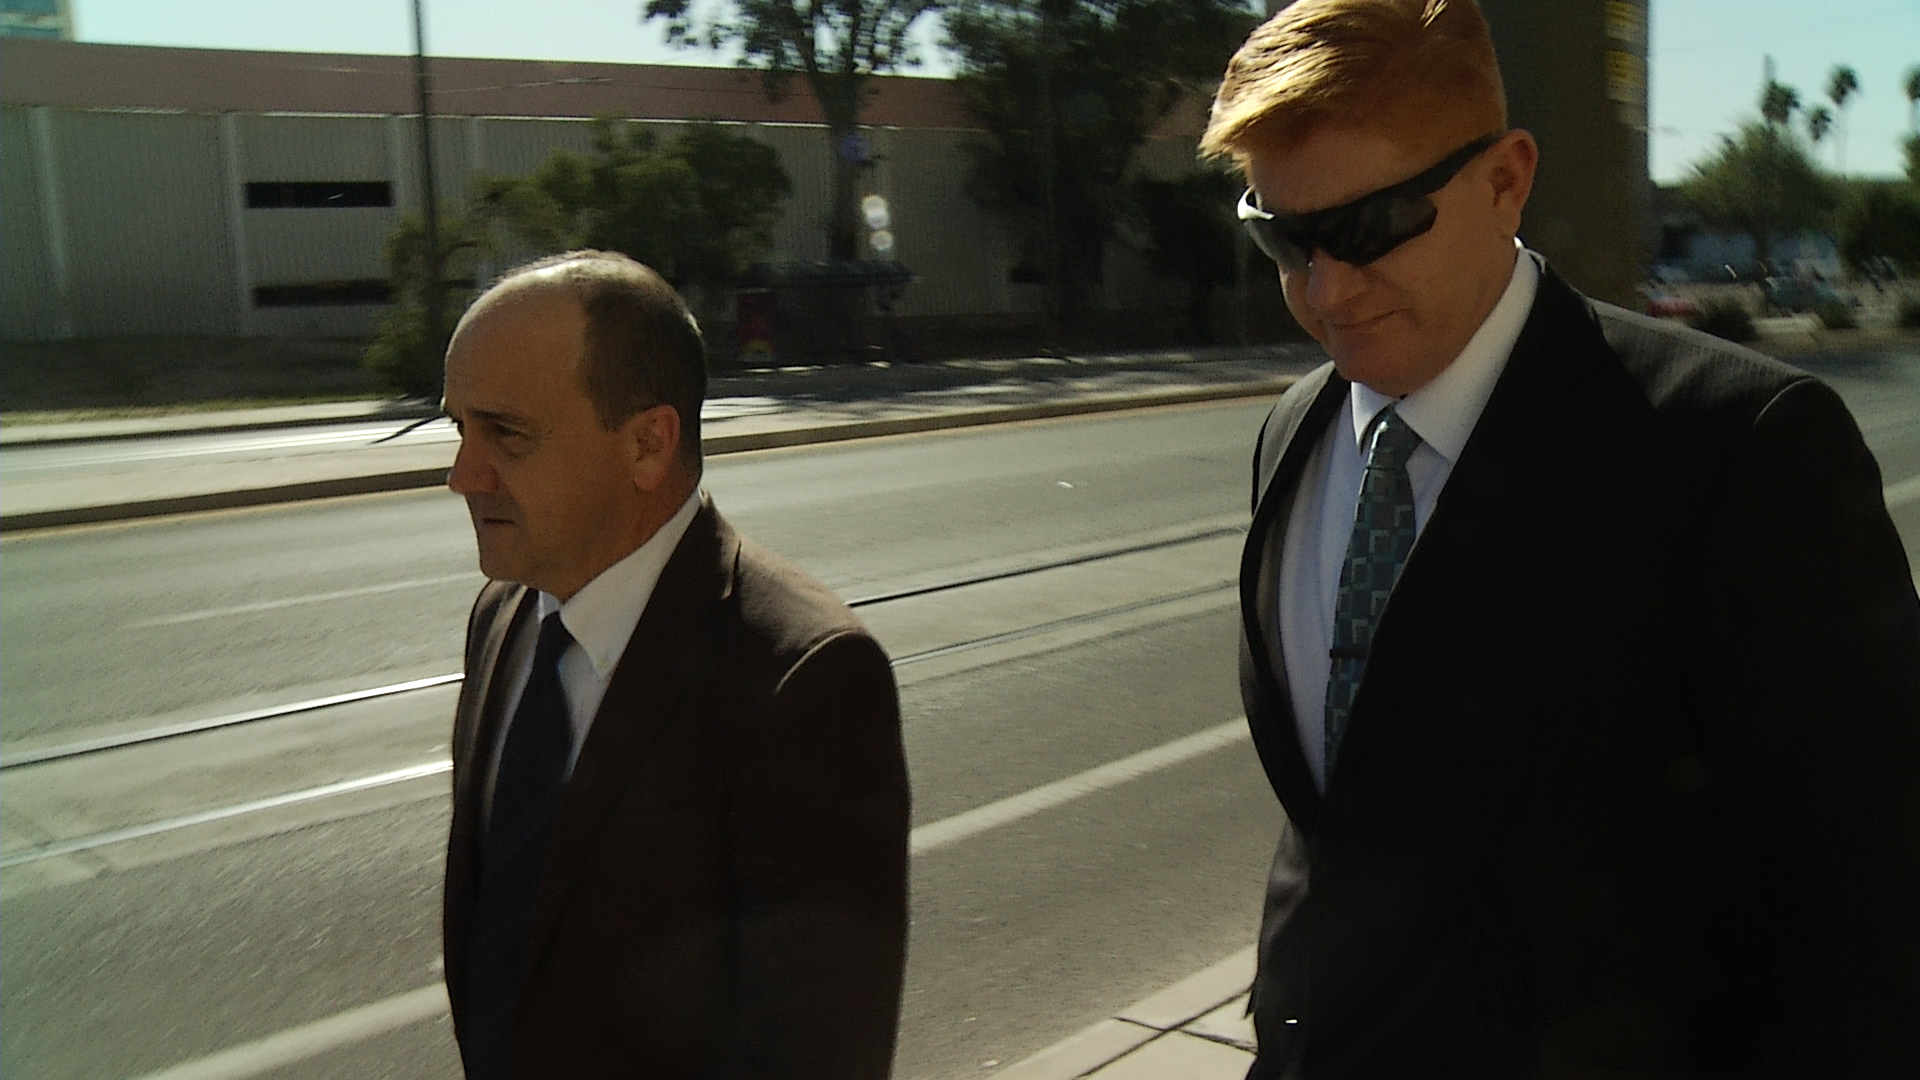 Border patrol Agent Lonnie Swartz (on right) walks into federal courthouse with attorney.